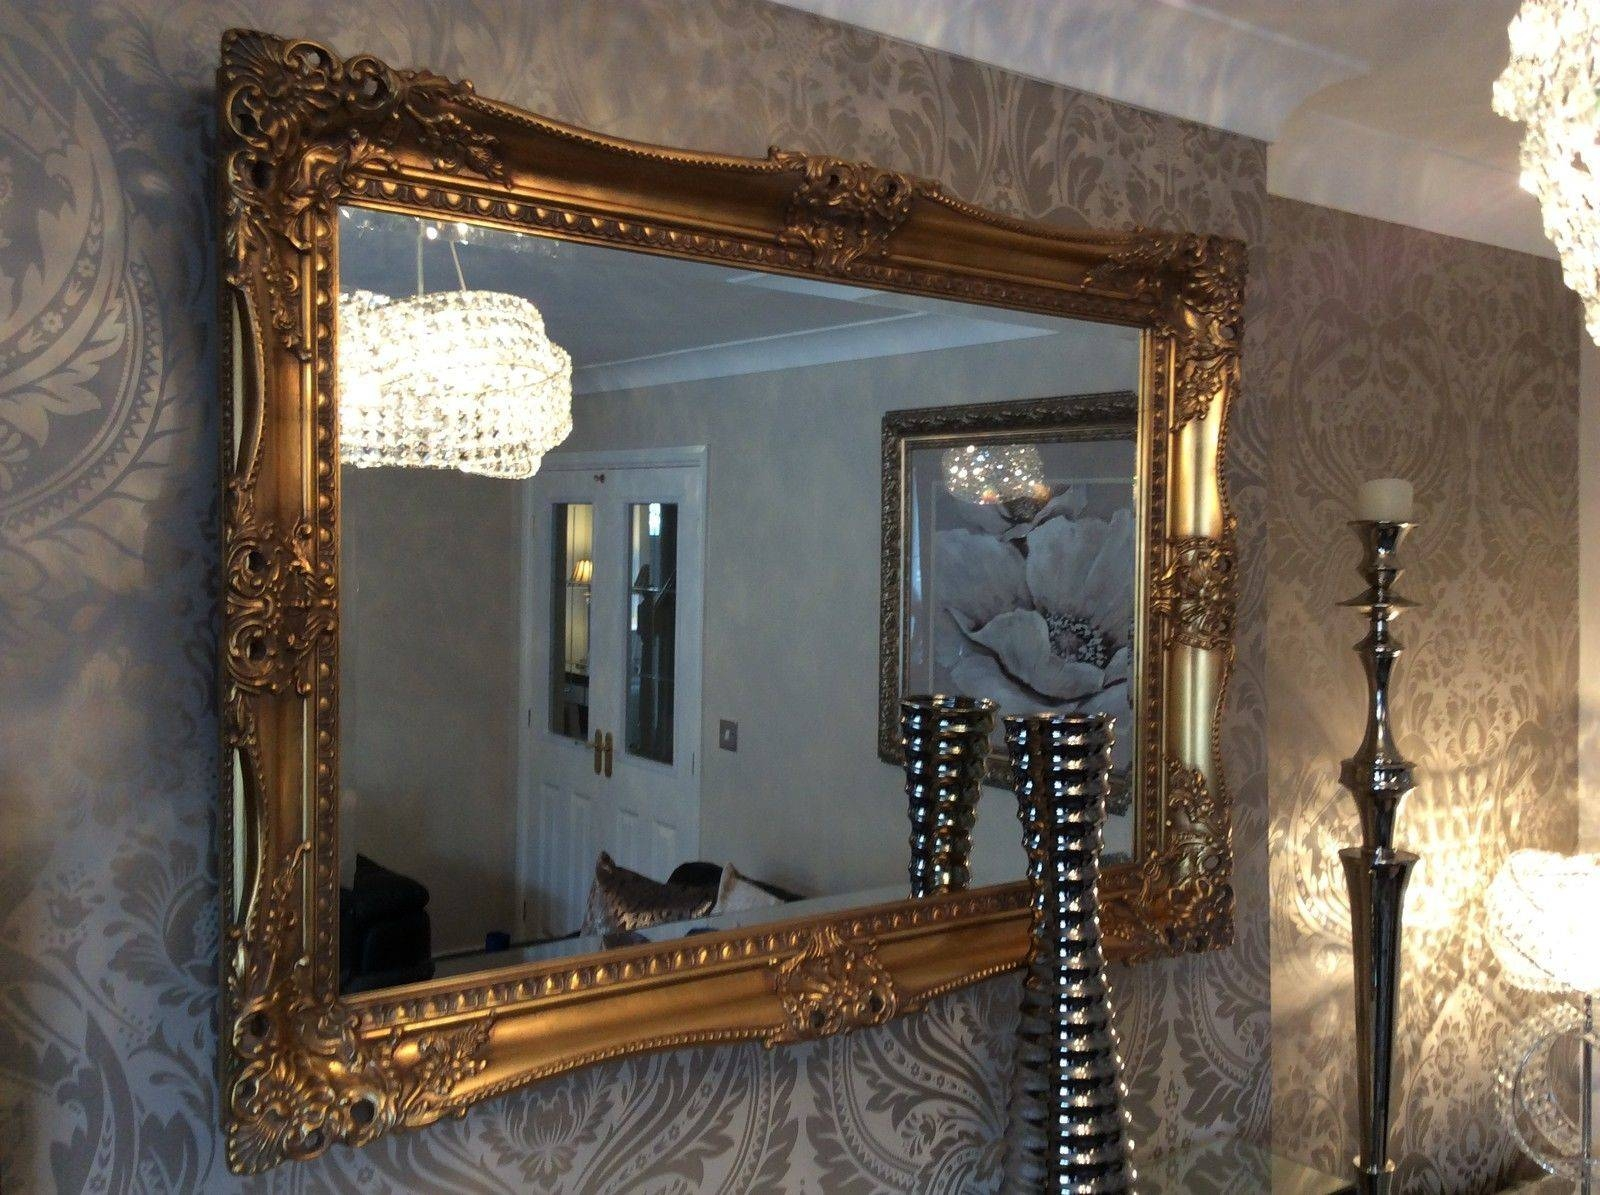 X Large Antique Gold Shabby Chic Ornate Decorative Wall Mirror Inside Large Gold Ornate Mirrors (View 15 of 15)